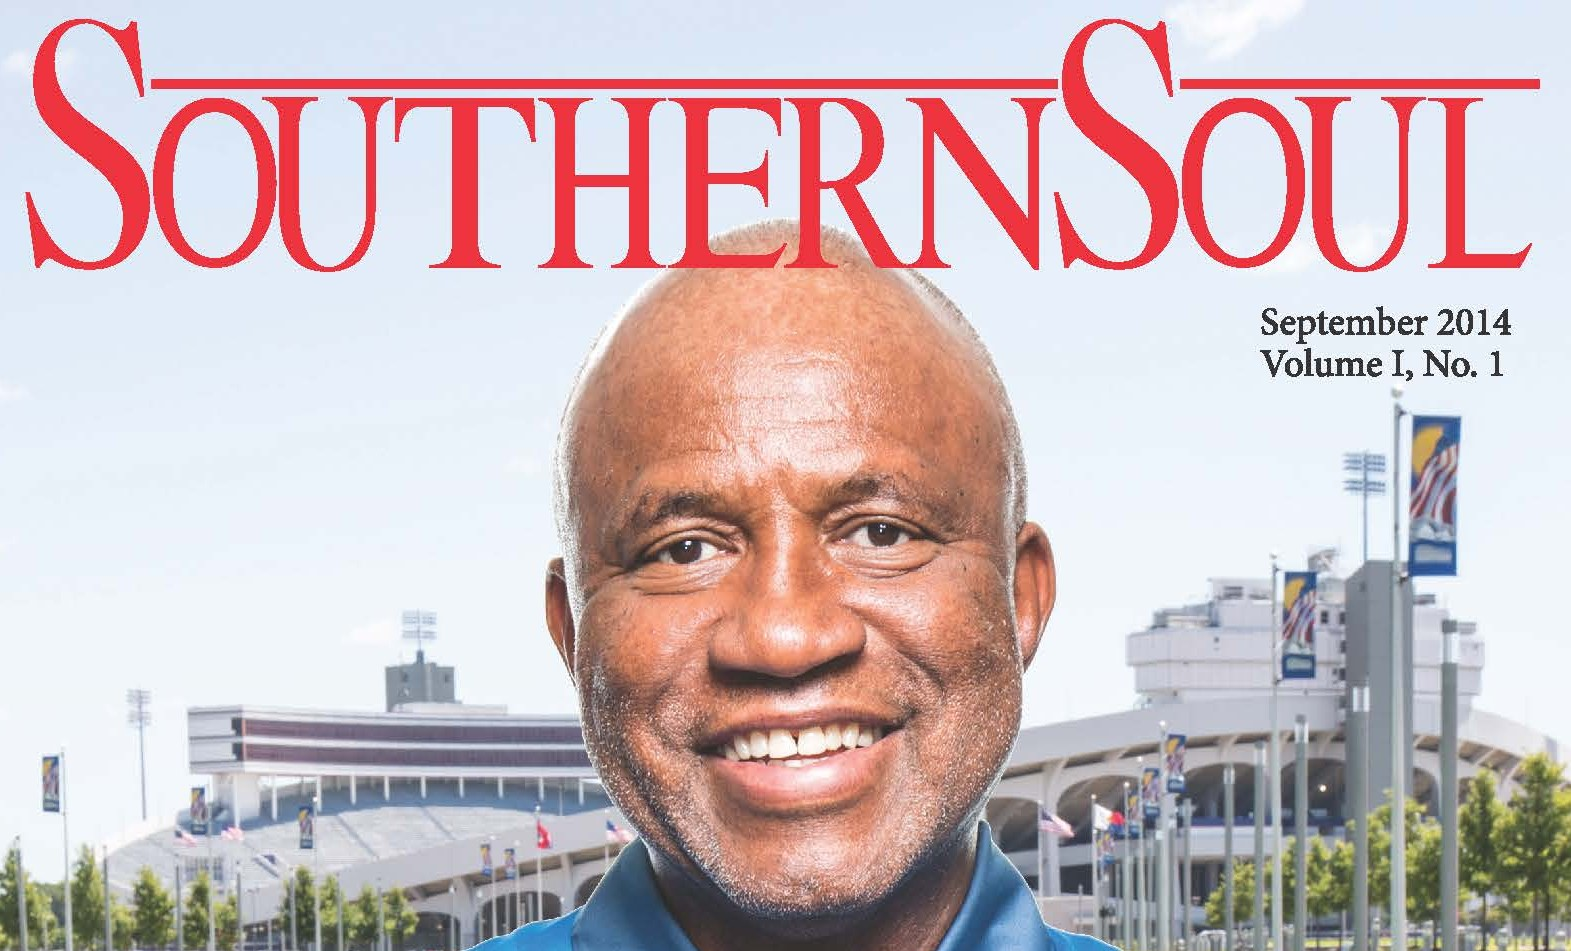 Southern Soul Magazine: Fred Jones Welcomes 25 Years